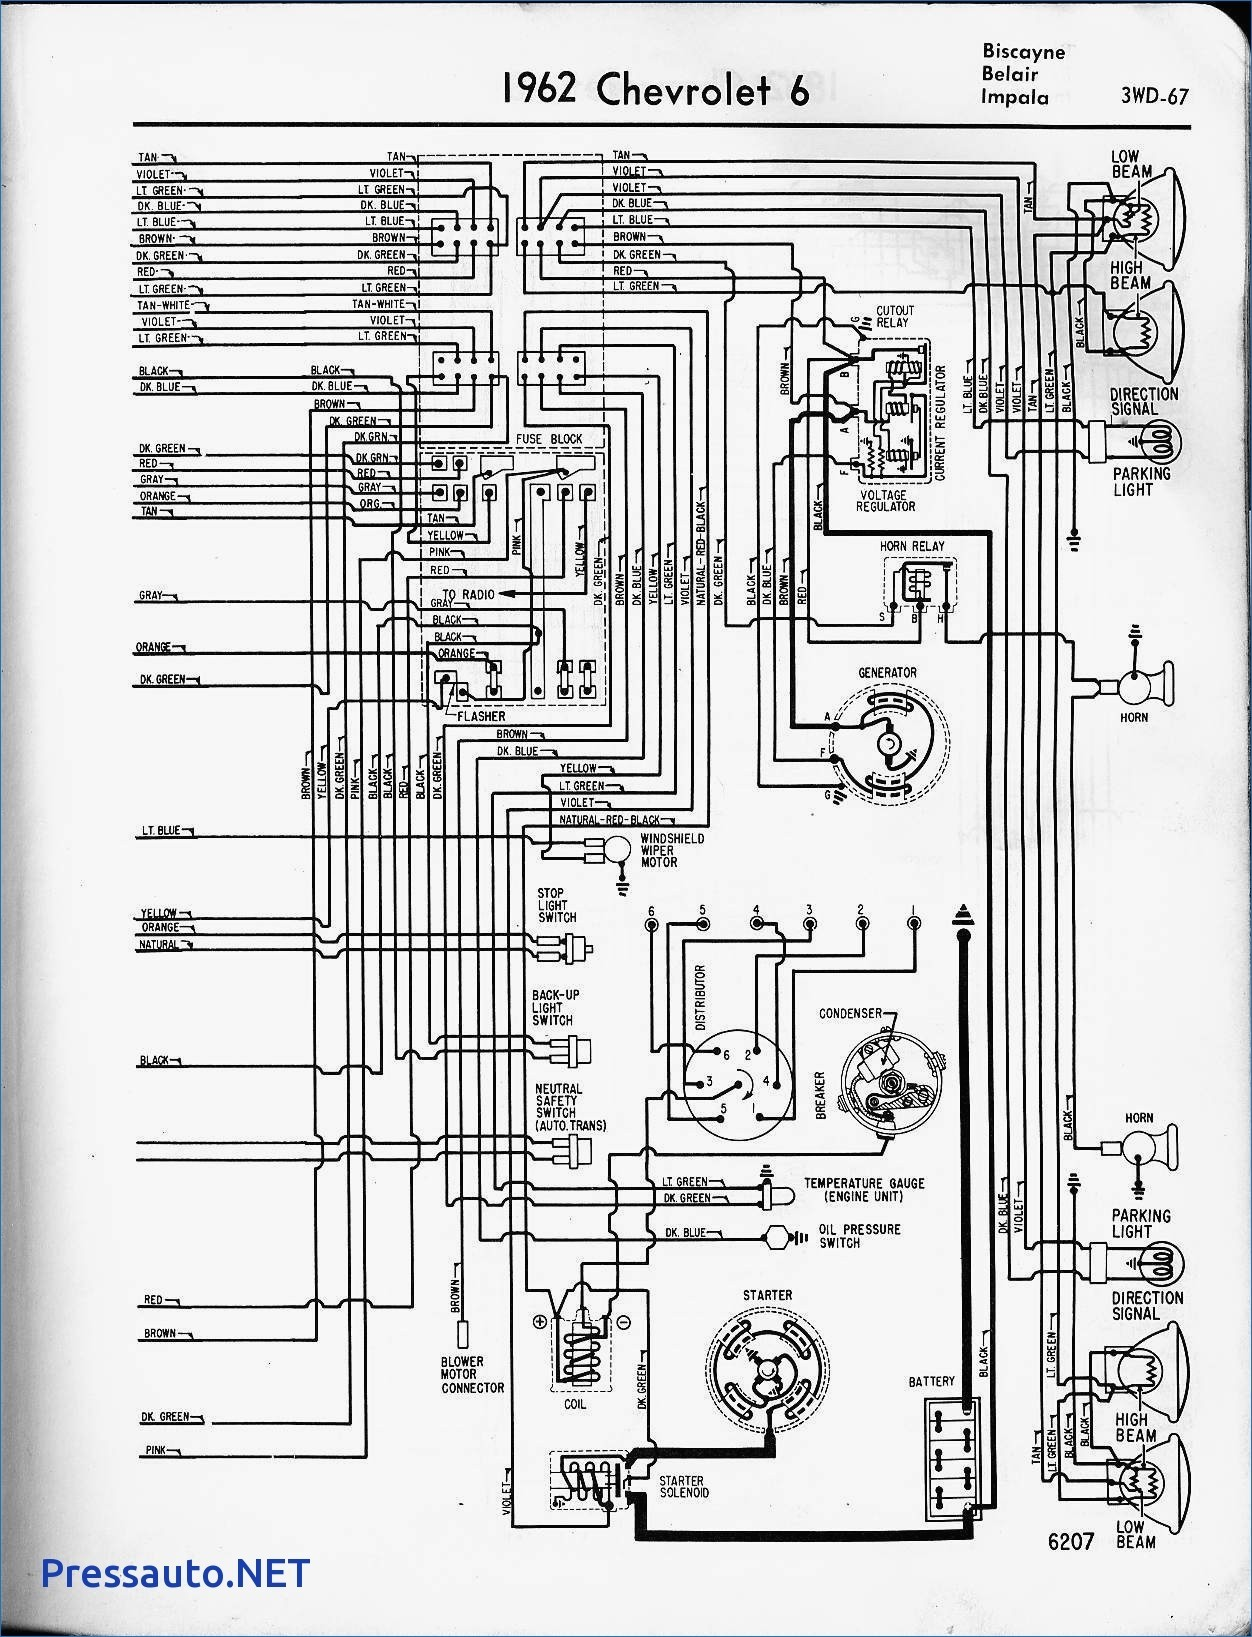 2009 Jeep Patriot Fuse Box Diagram 1966 Impala Wiring Schematics Diagrams 1962 Underhood Block And Schematic U2022 Rh Lazysupply Co Chevy Convertible